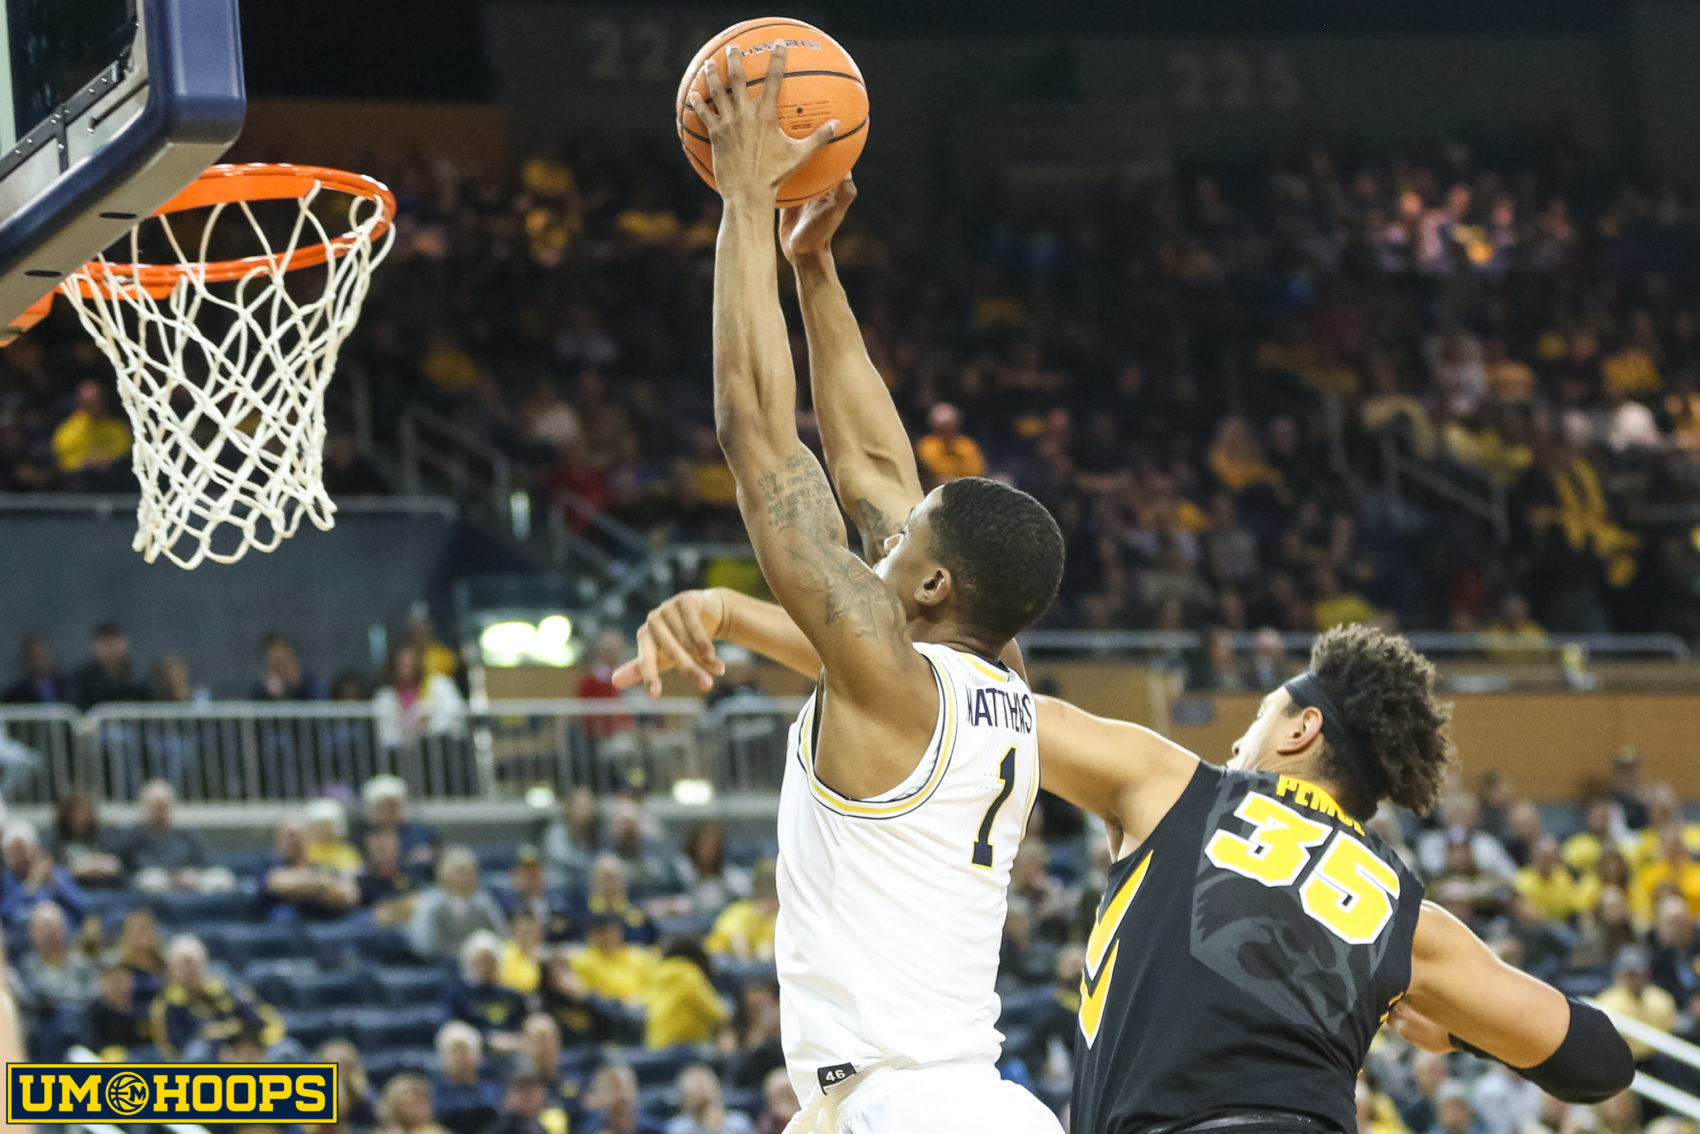 Michigan 74, Iowa 59-31